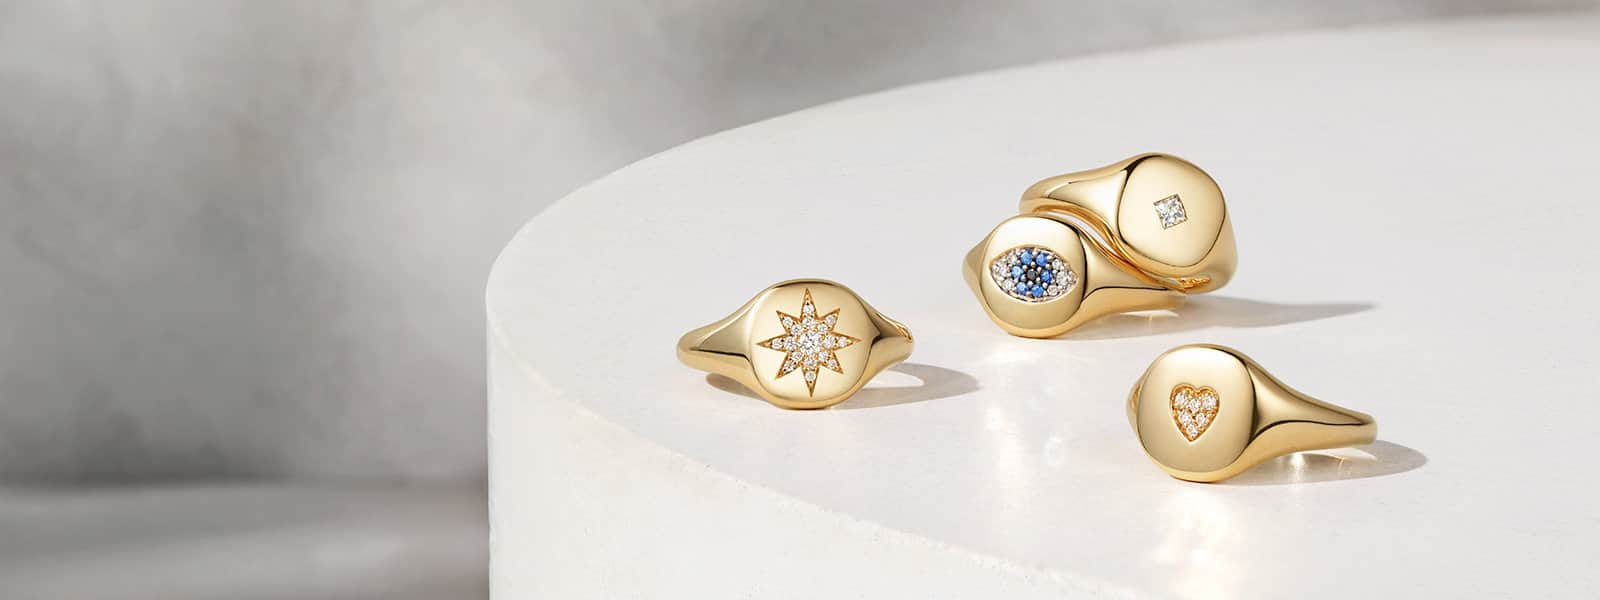 Four David Yurman pinky rings in 18K yellow gold with a pavé diamond star, diamond, heart and evil eye with sapphires, all scattered on a white circular stone surface.